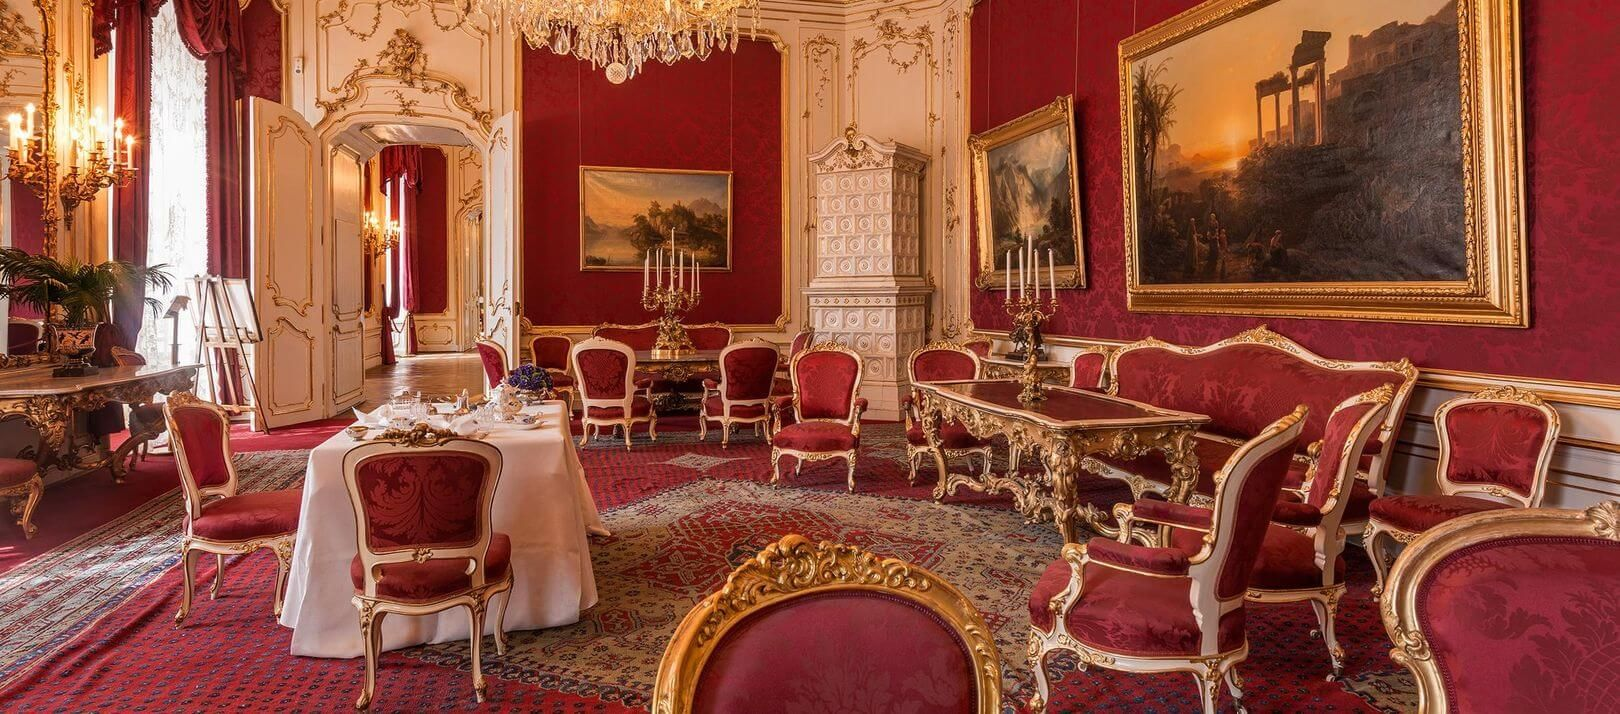 Hofburg Vienna In 2020 Vienna Imperial Palace Hall Wallpaper